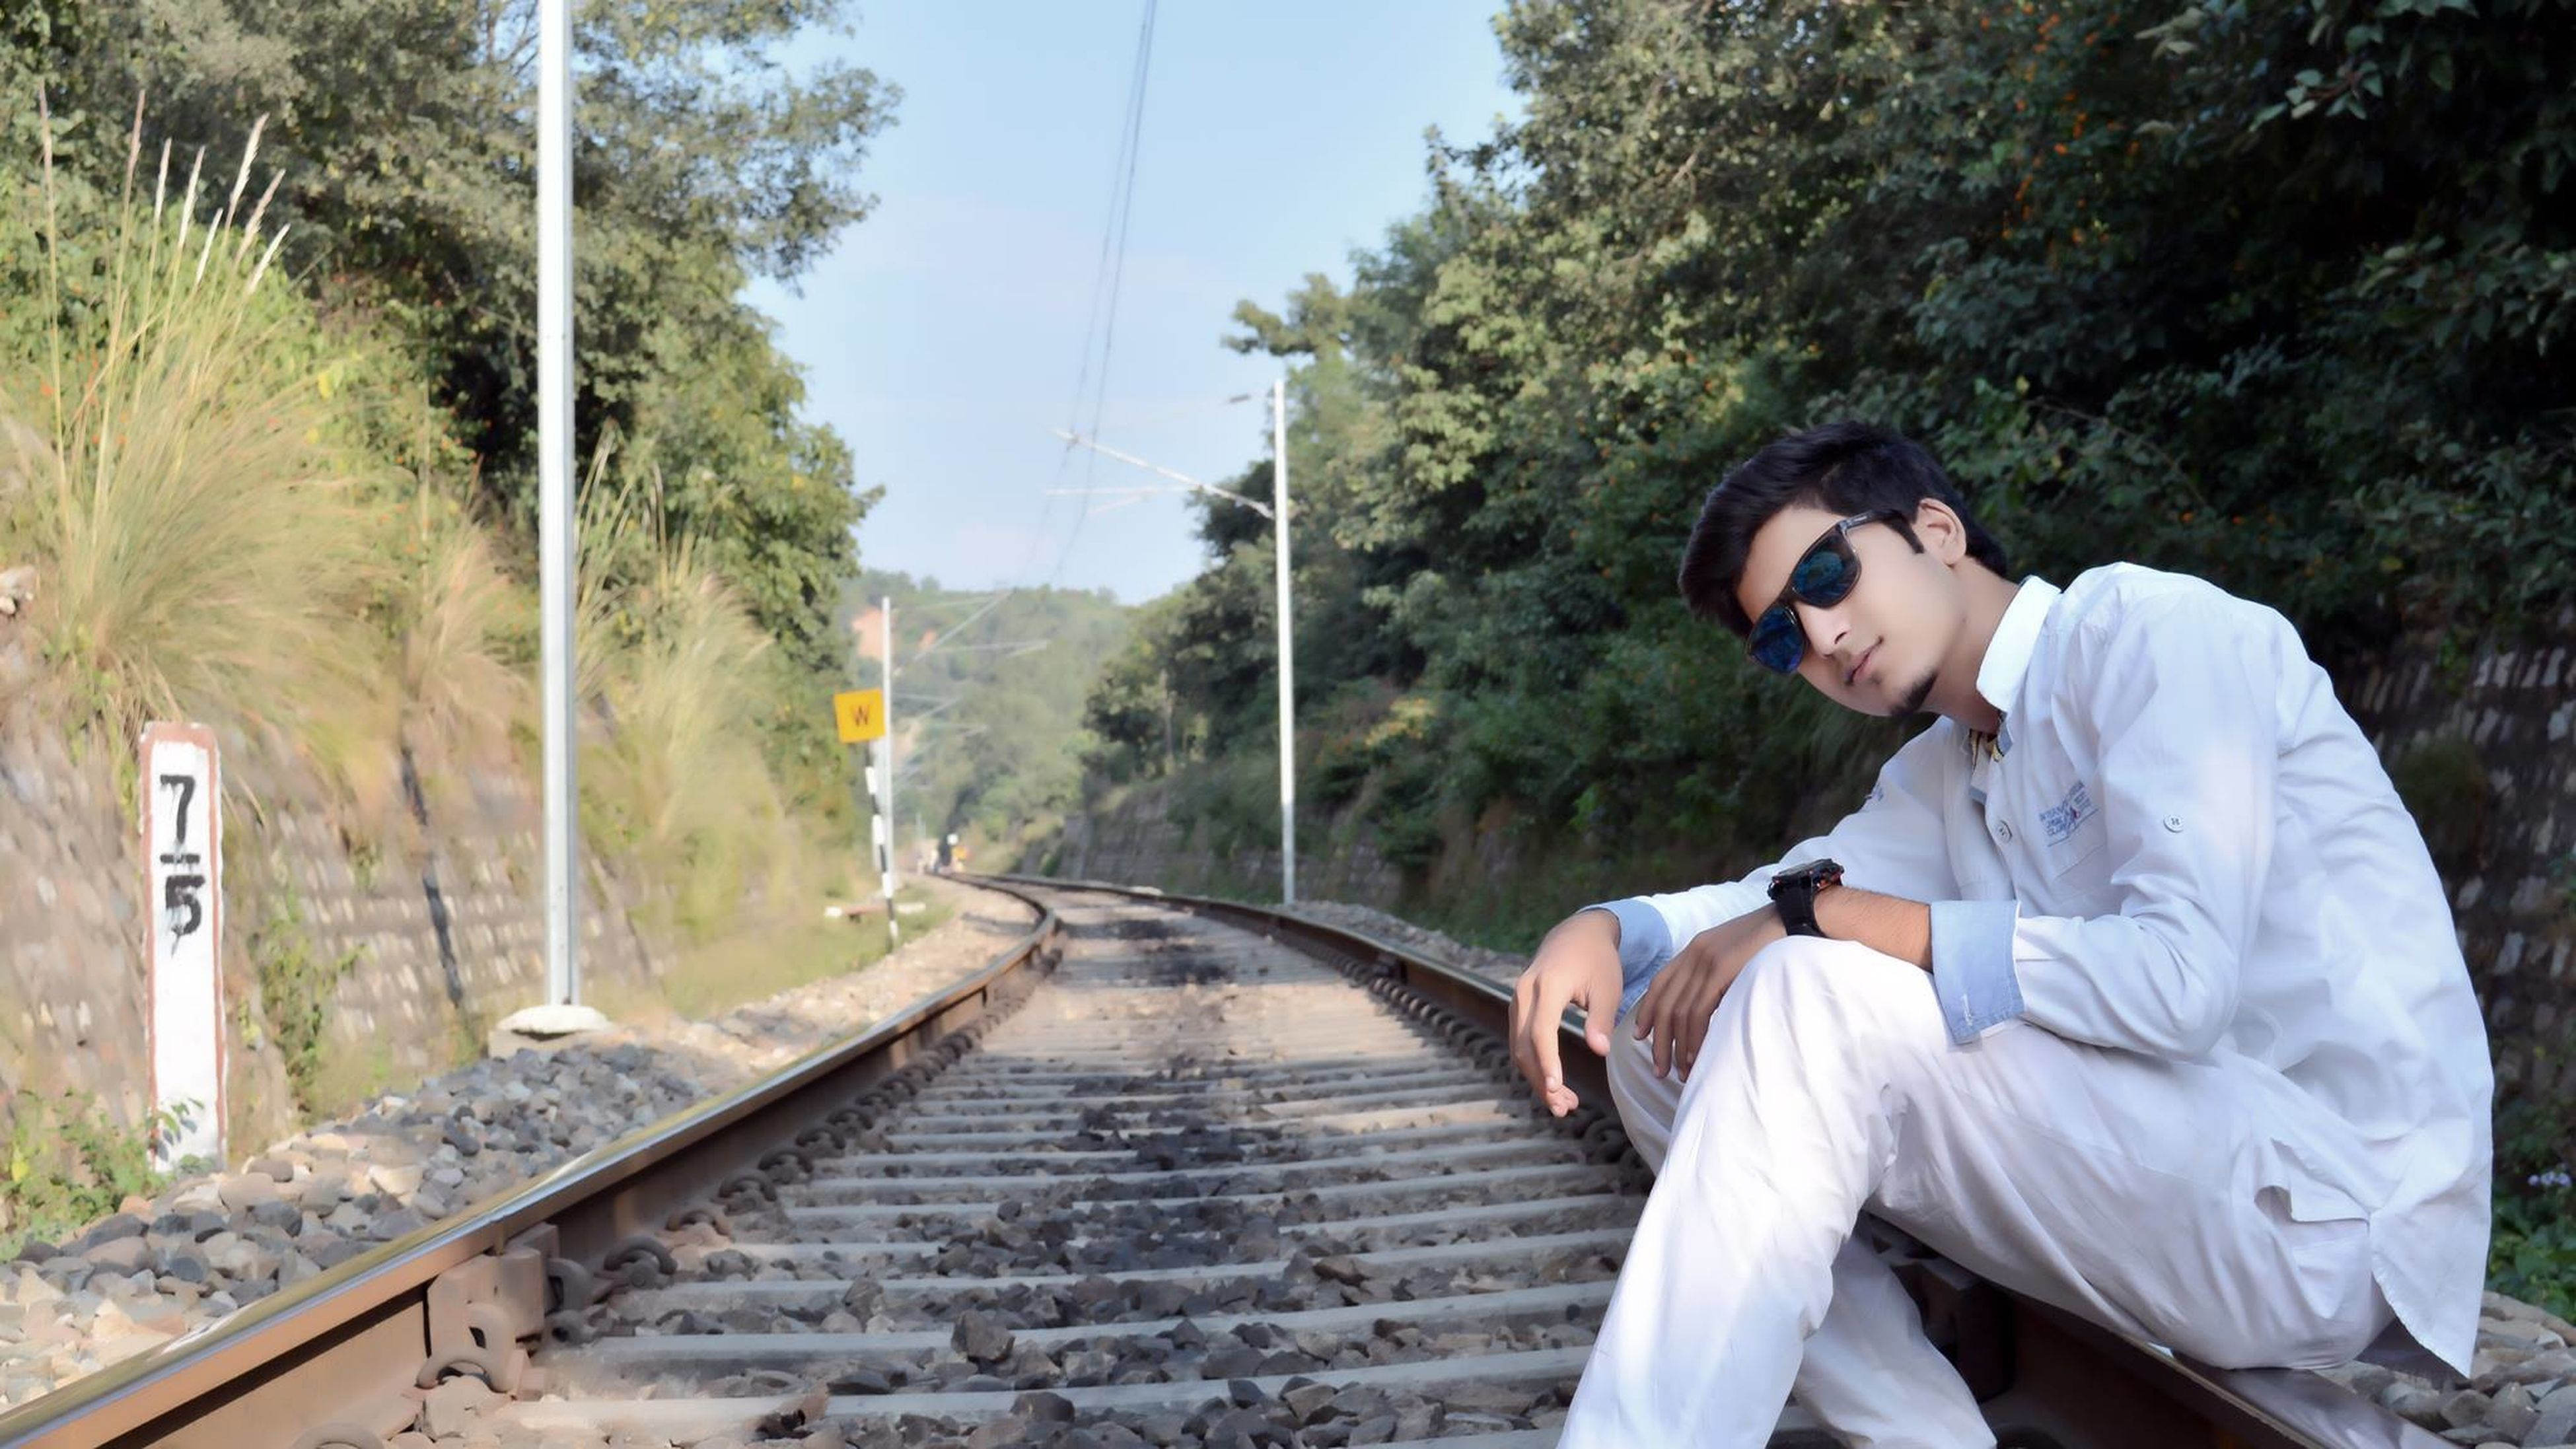 tree, lifestyles, railroad track, young adult, casual clothing, leisure activity, rail transportation, steps, railing, mountain, forest, built structure, day, transportation, the way forward, standing, front view, outdoors